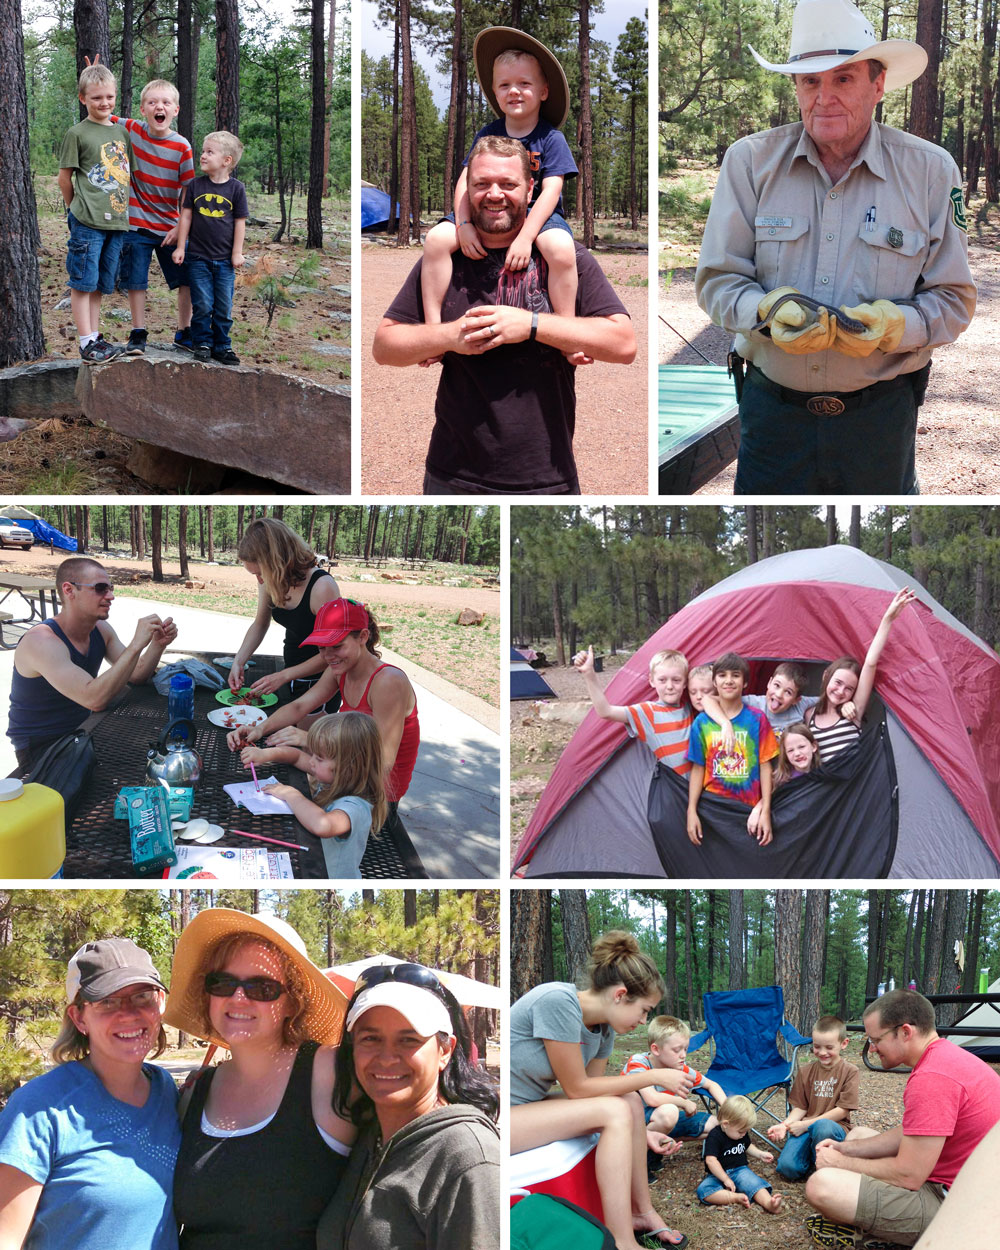 Family Camping Trip - Woods Canyon Lake, Sitgreaves National Forest, AZ